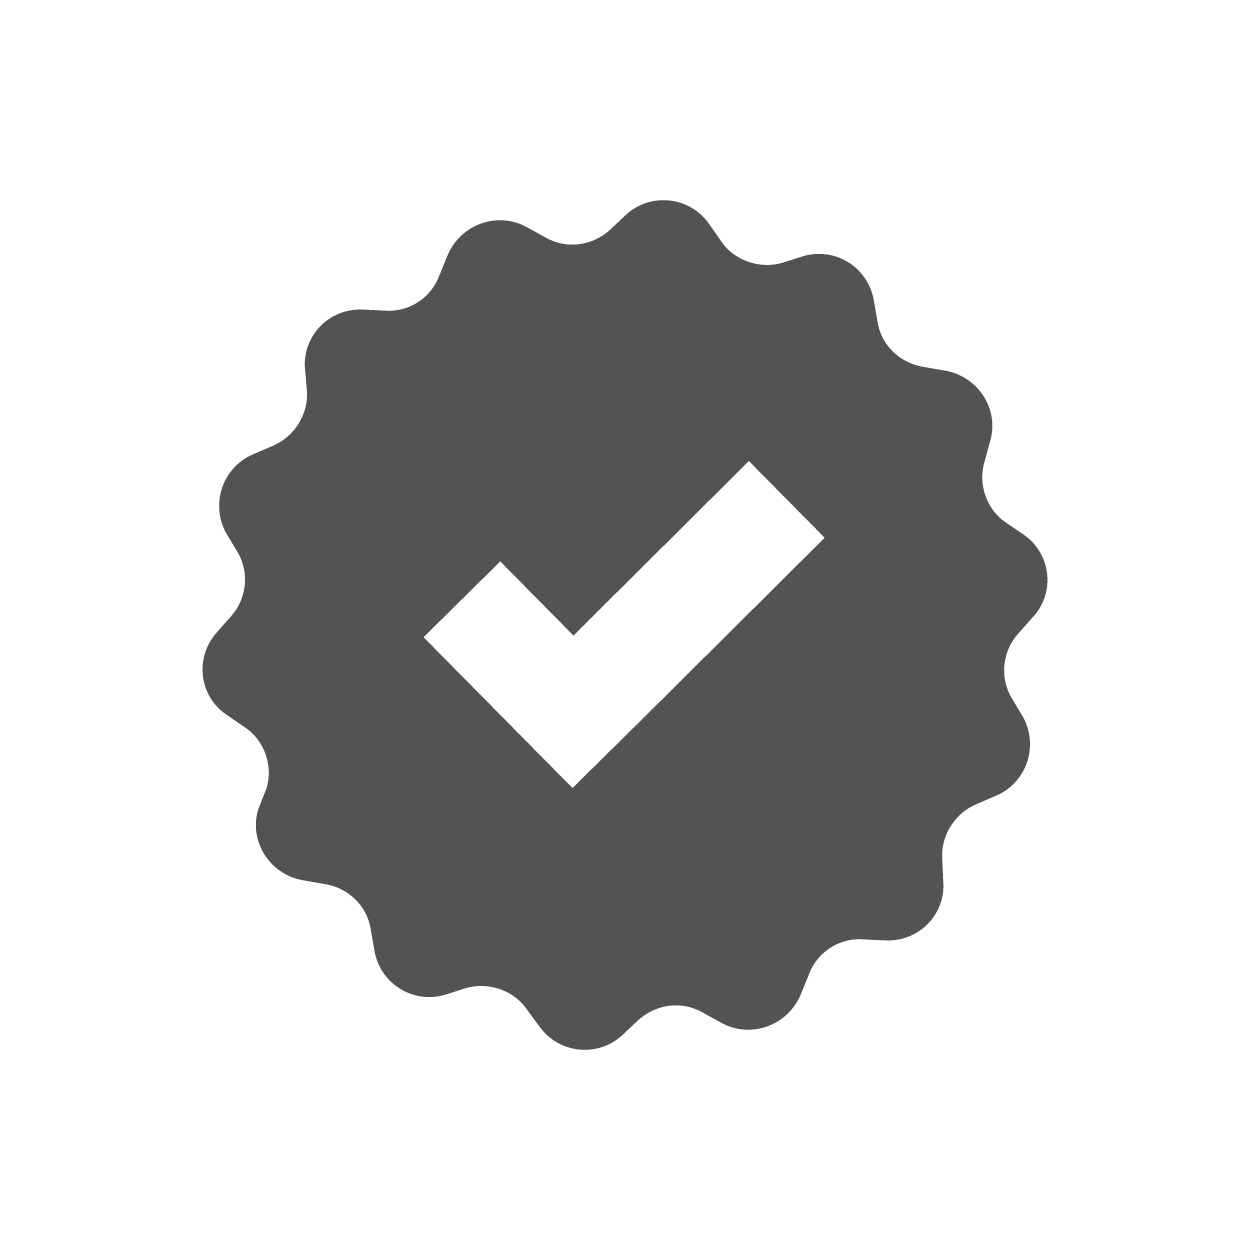 verified by Gregor Cresnar from the Noun Project